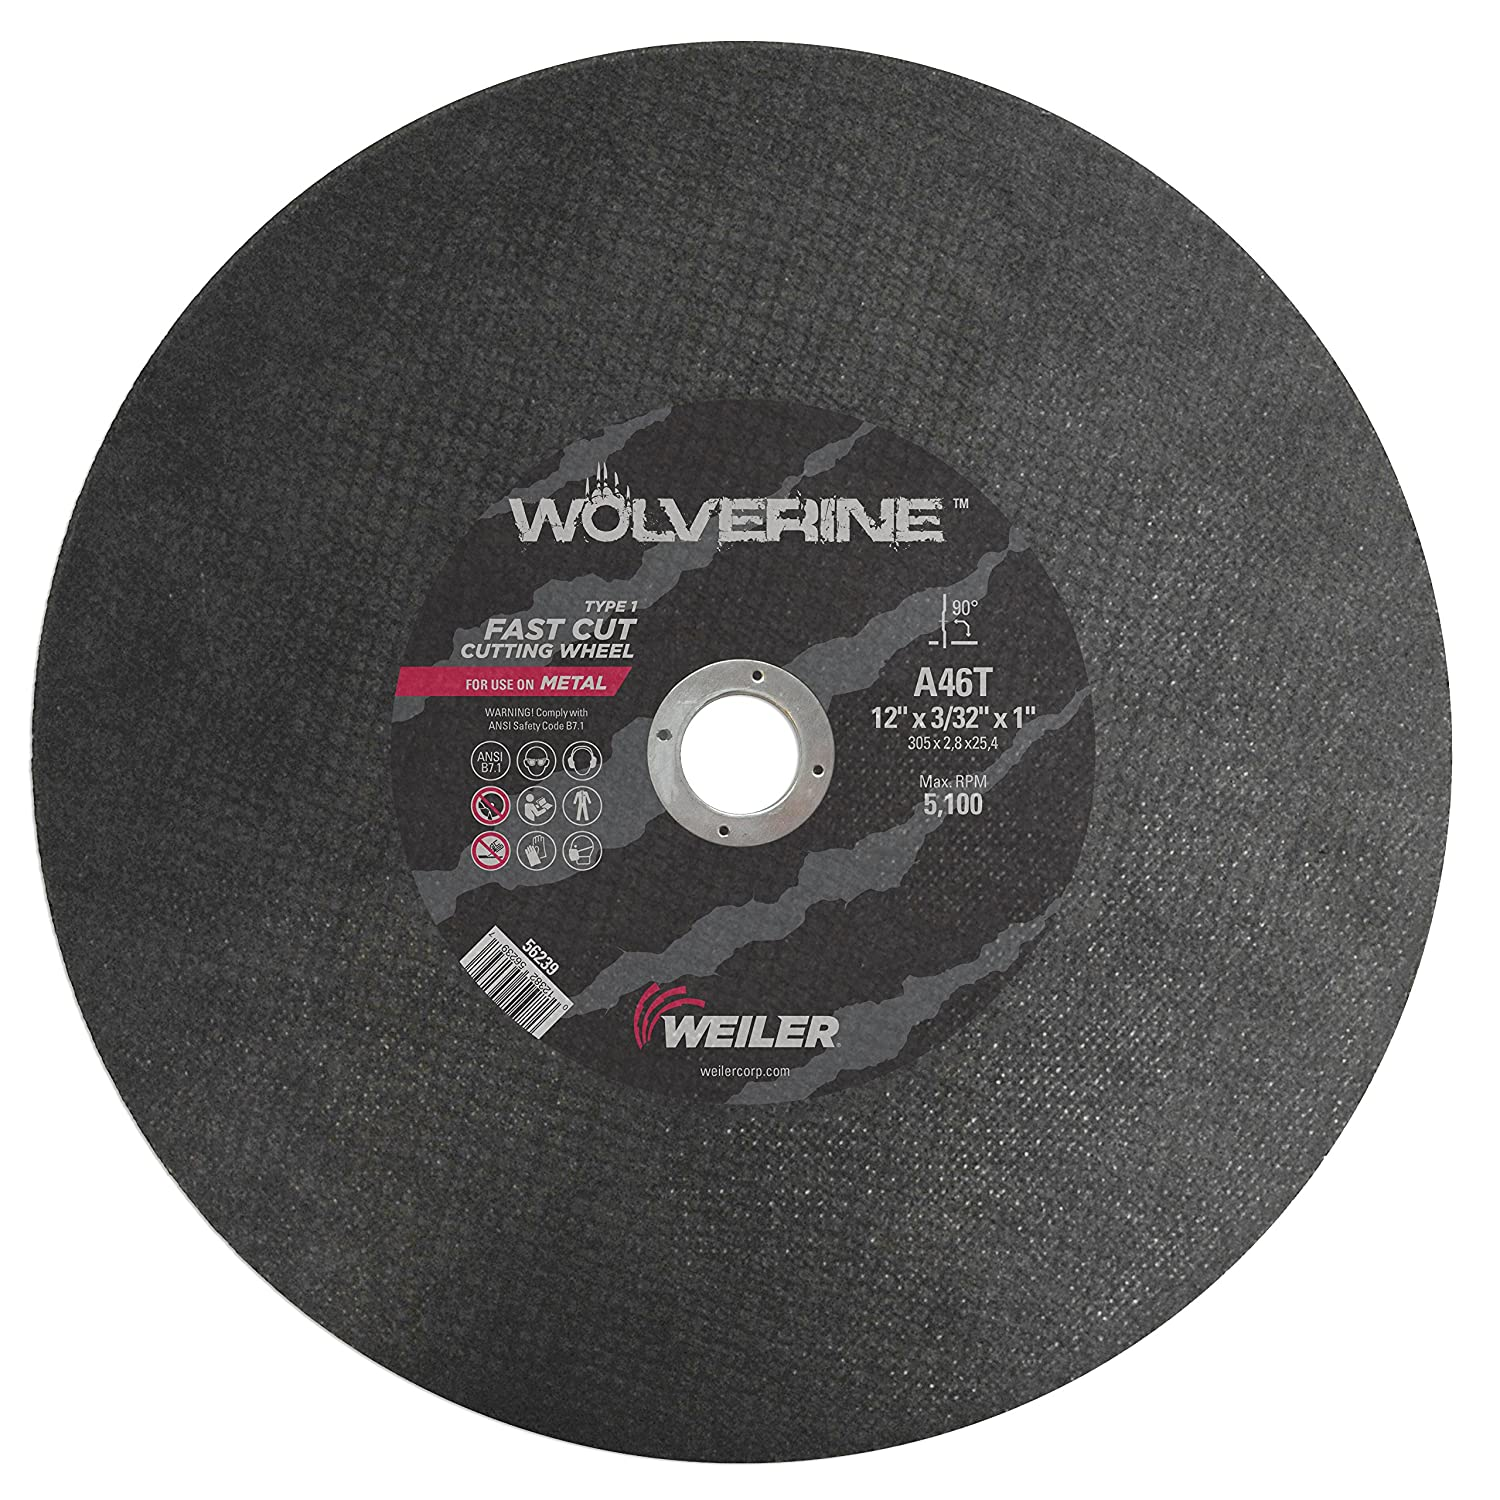 Pack of 10 Pack of 10 A46T 1 A.H. 30012382562398 Weiler 56239 12 x 3//32 Wolverine Type 1 Cutting Wheel 1 A.H.